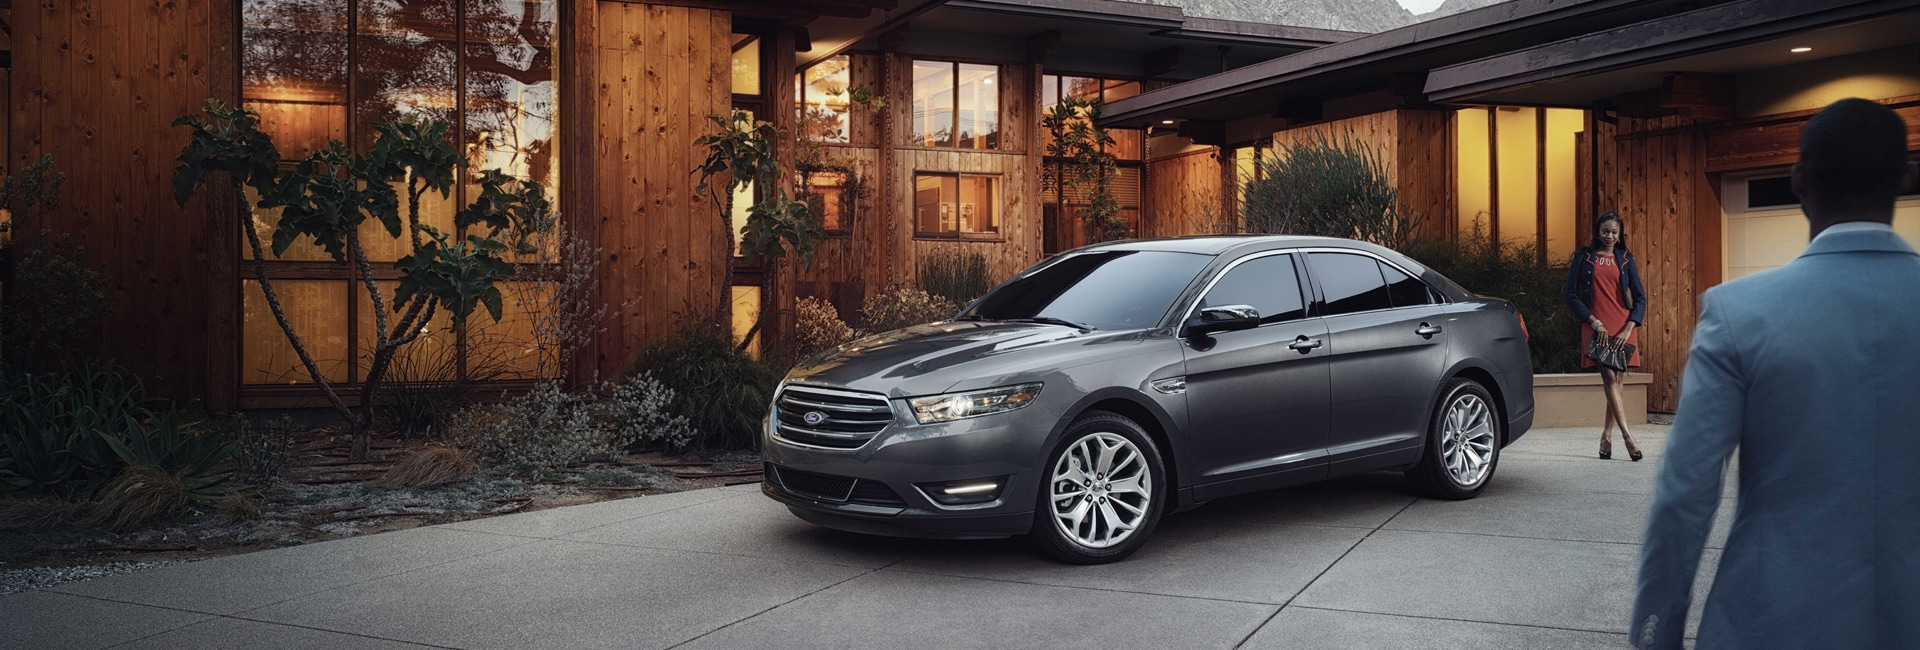 Ford Taurus Exterior Vehicle Features